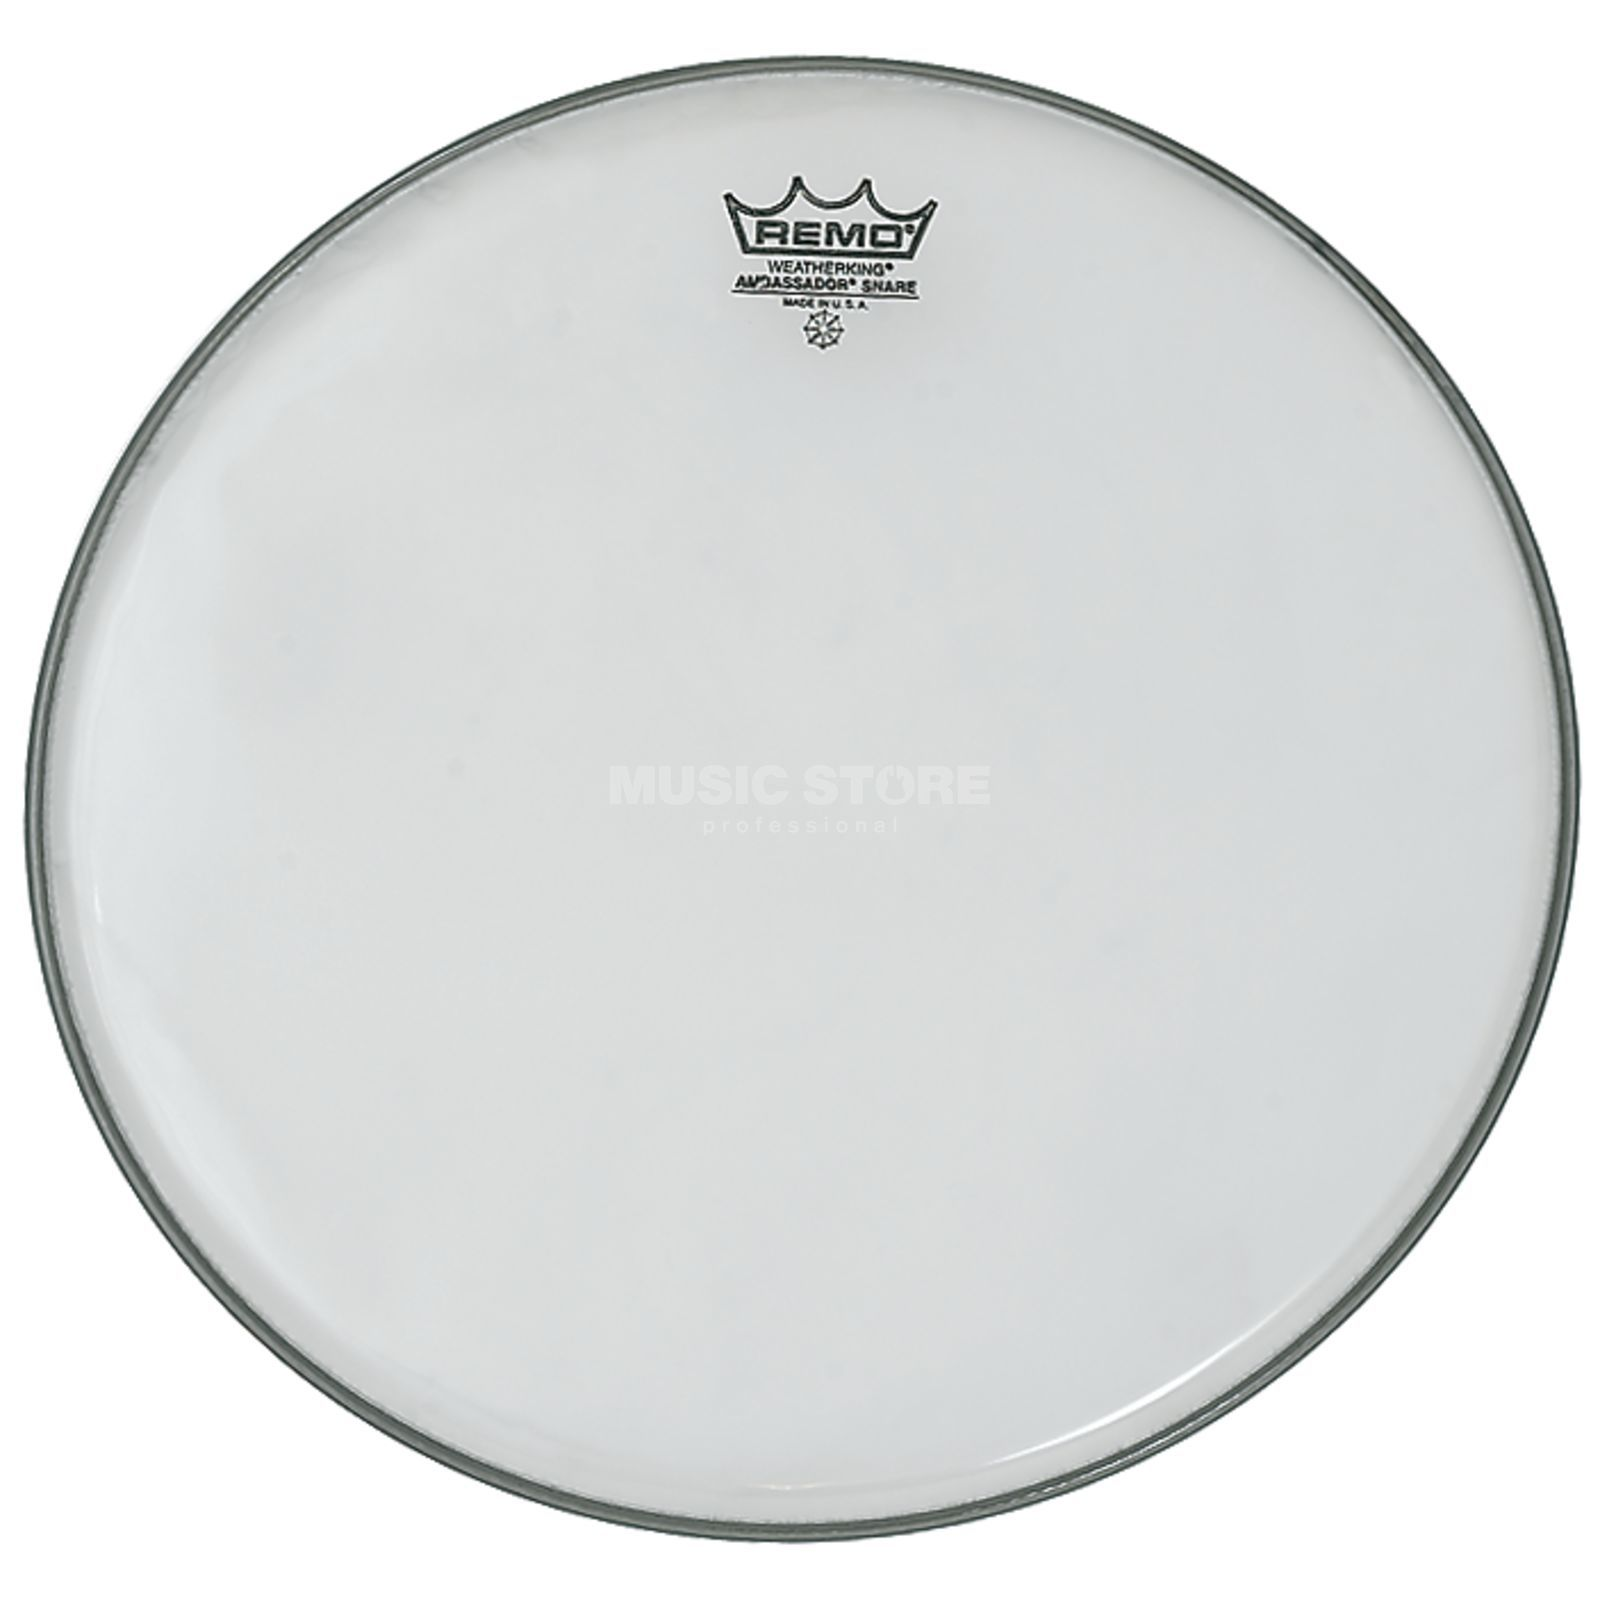 "Remo Ambassador Hazy 14"", clear, Snare Reso Product Image"